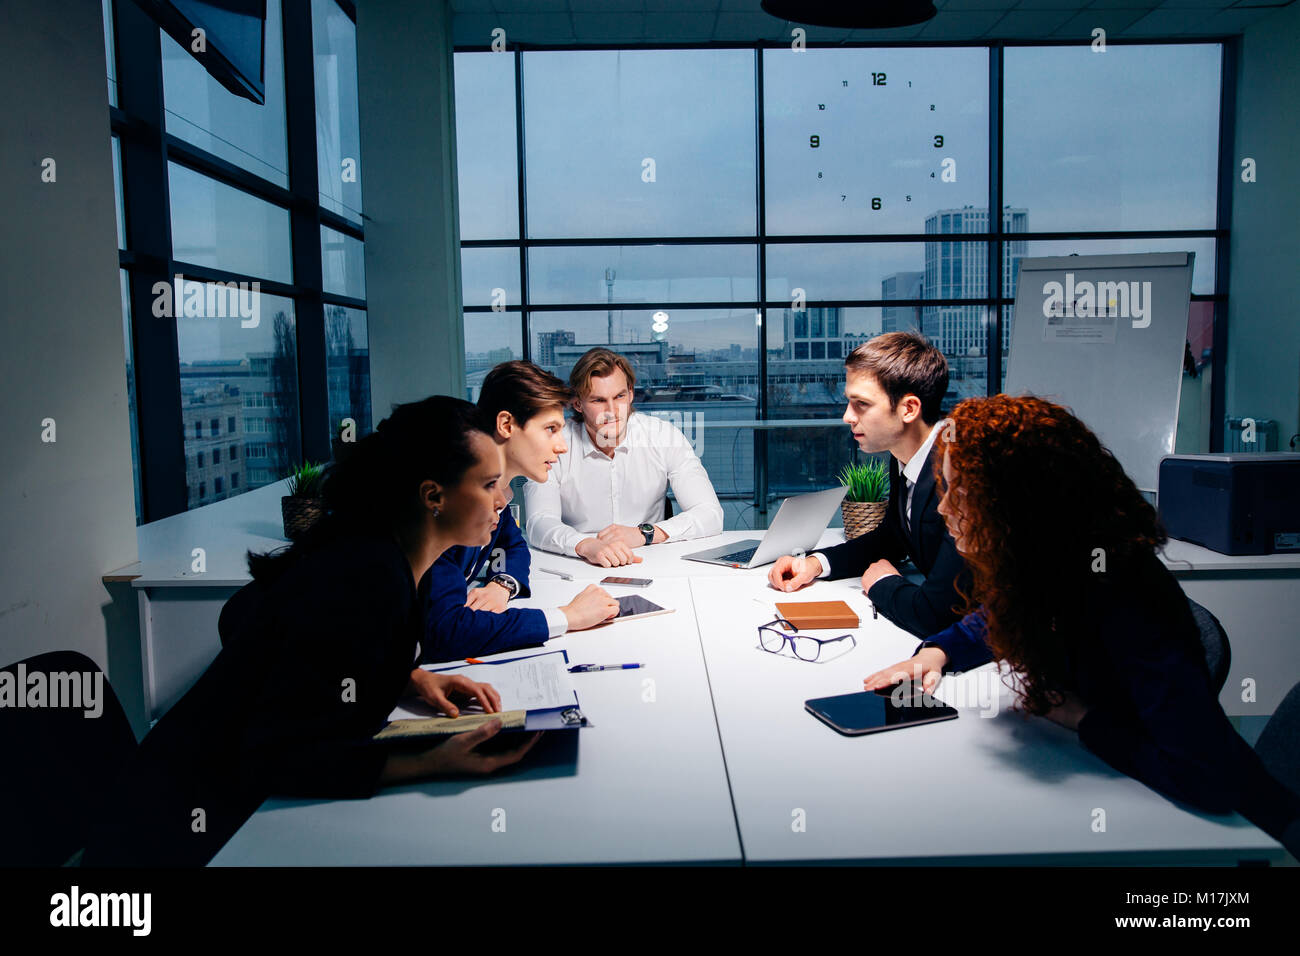 boss leader coaching in office. On job training. Business and Education concept - Stock Image